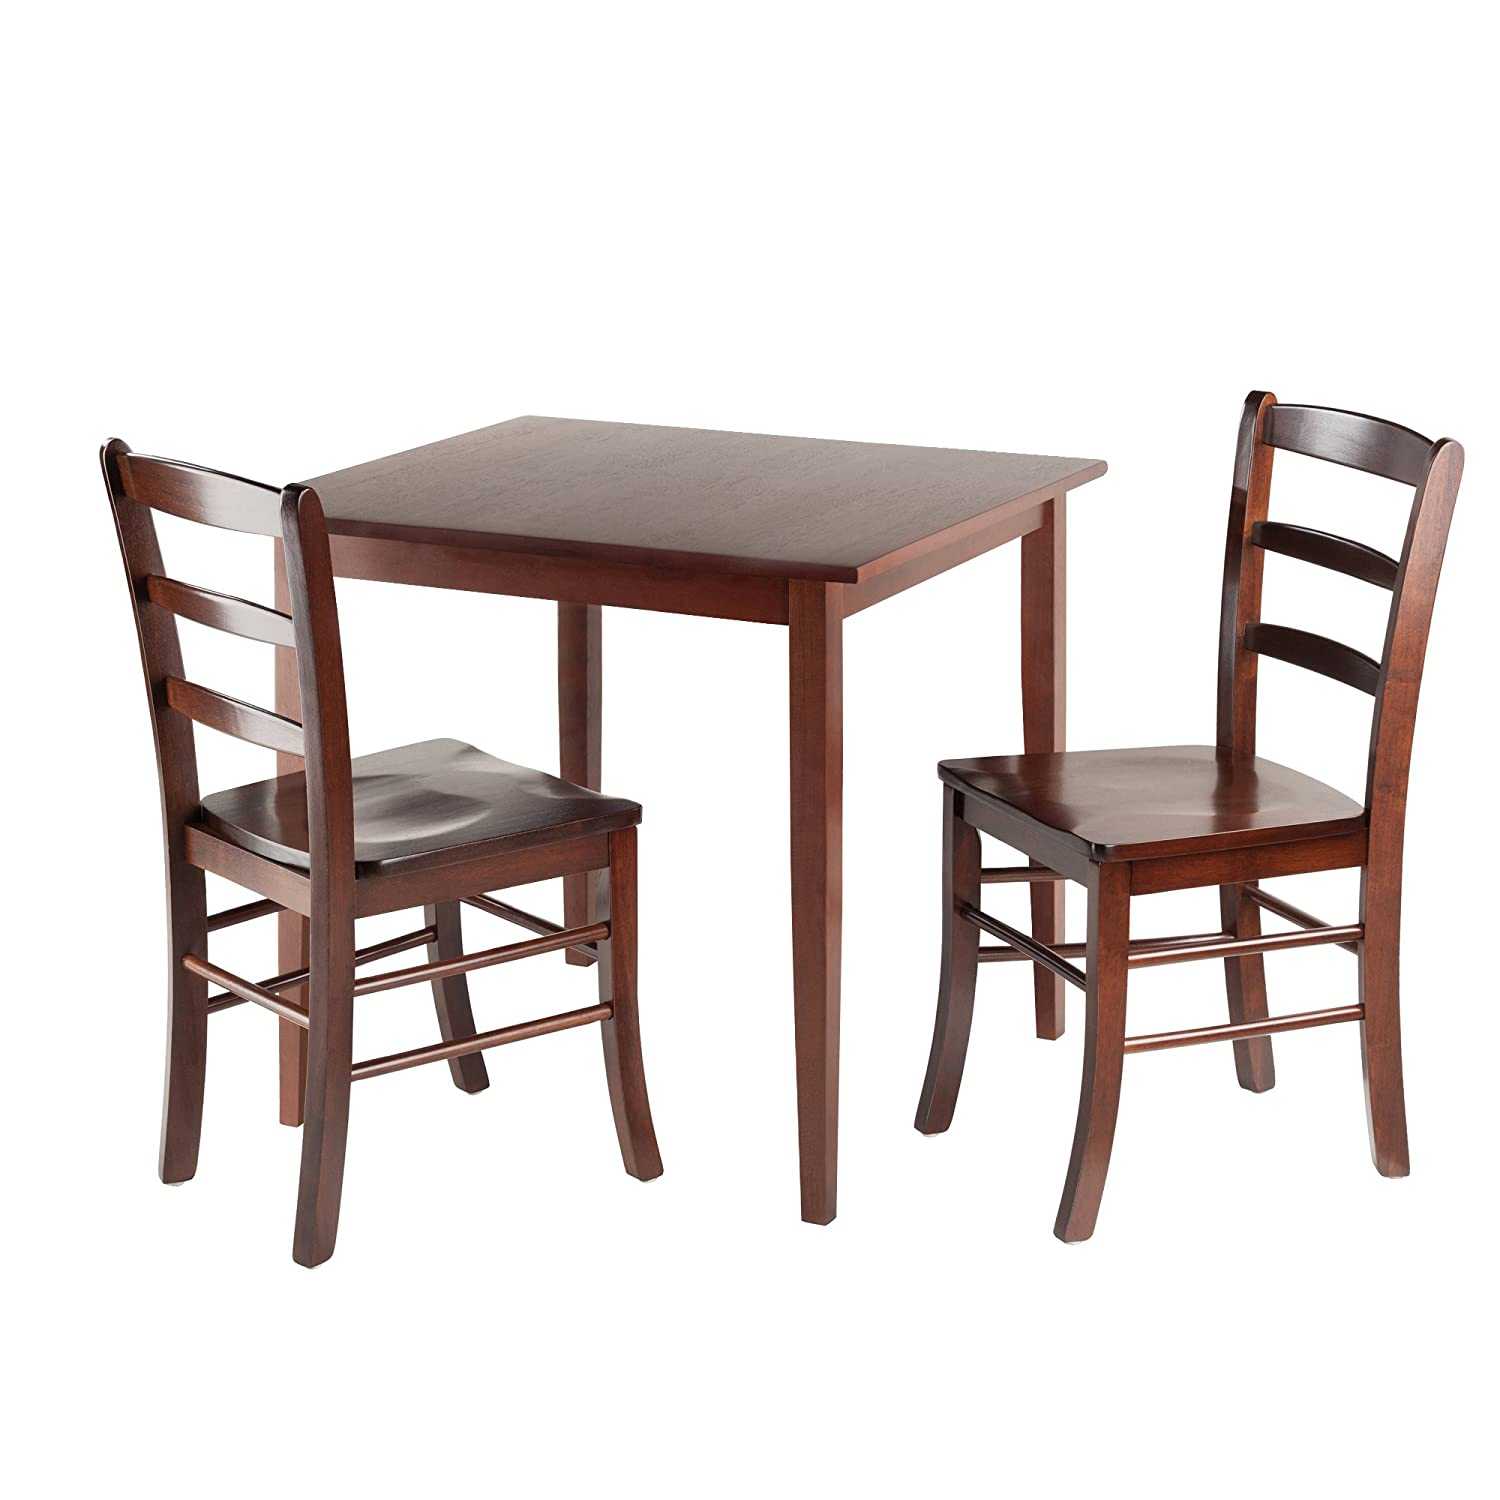 Amazon.com - Winsome Groveland 3-Piece Wood Dining Set, Light Oak ...